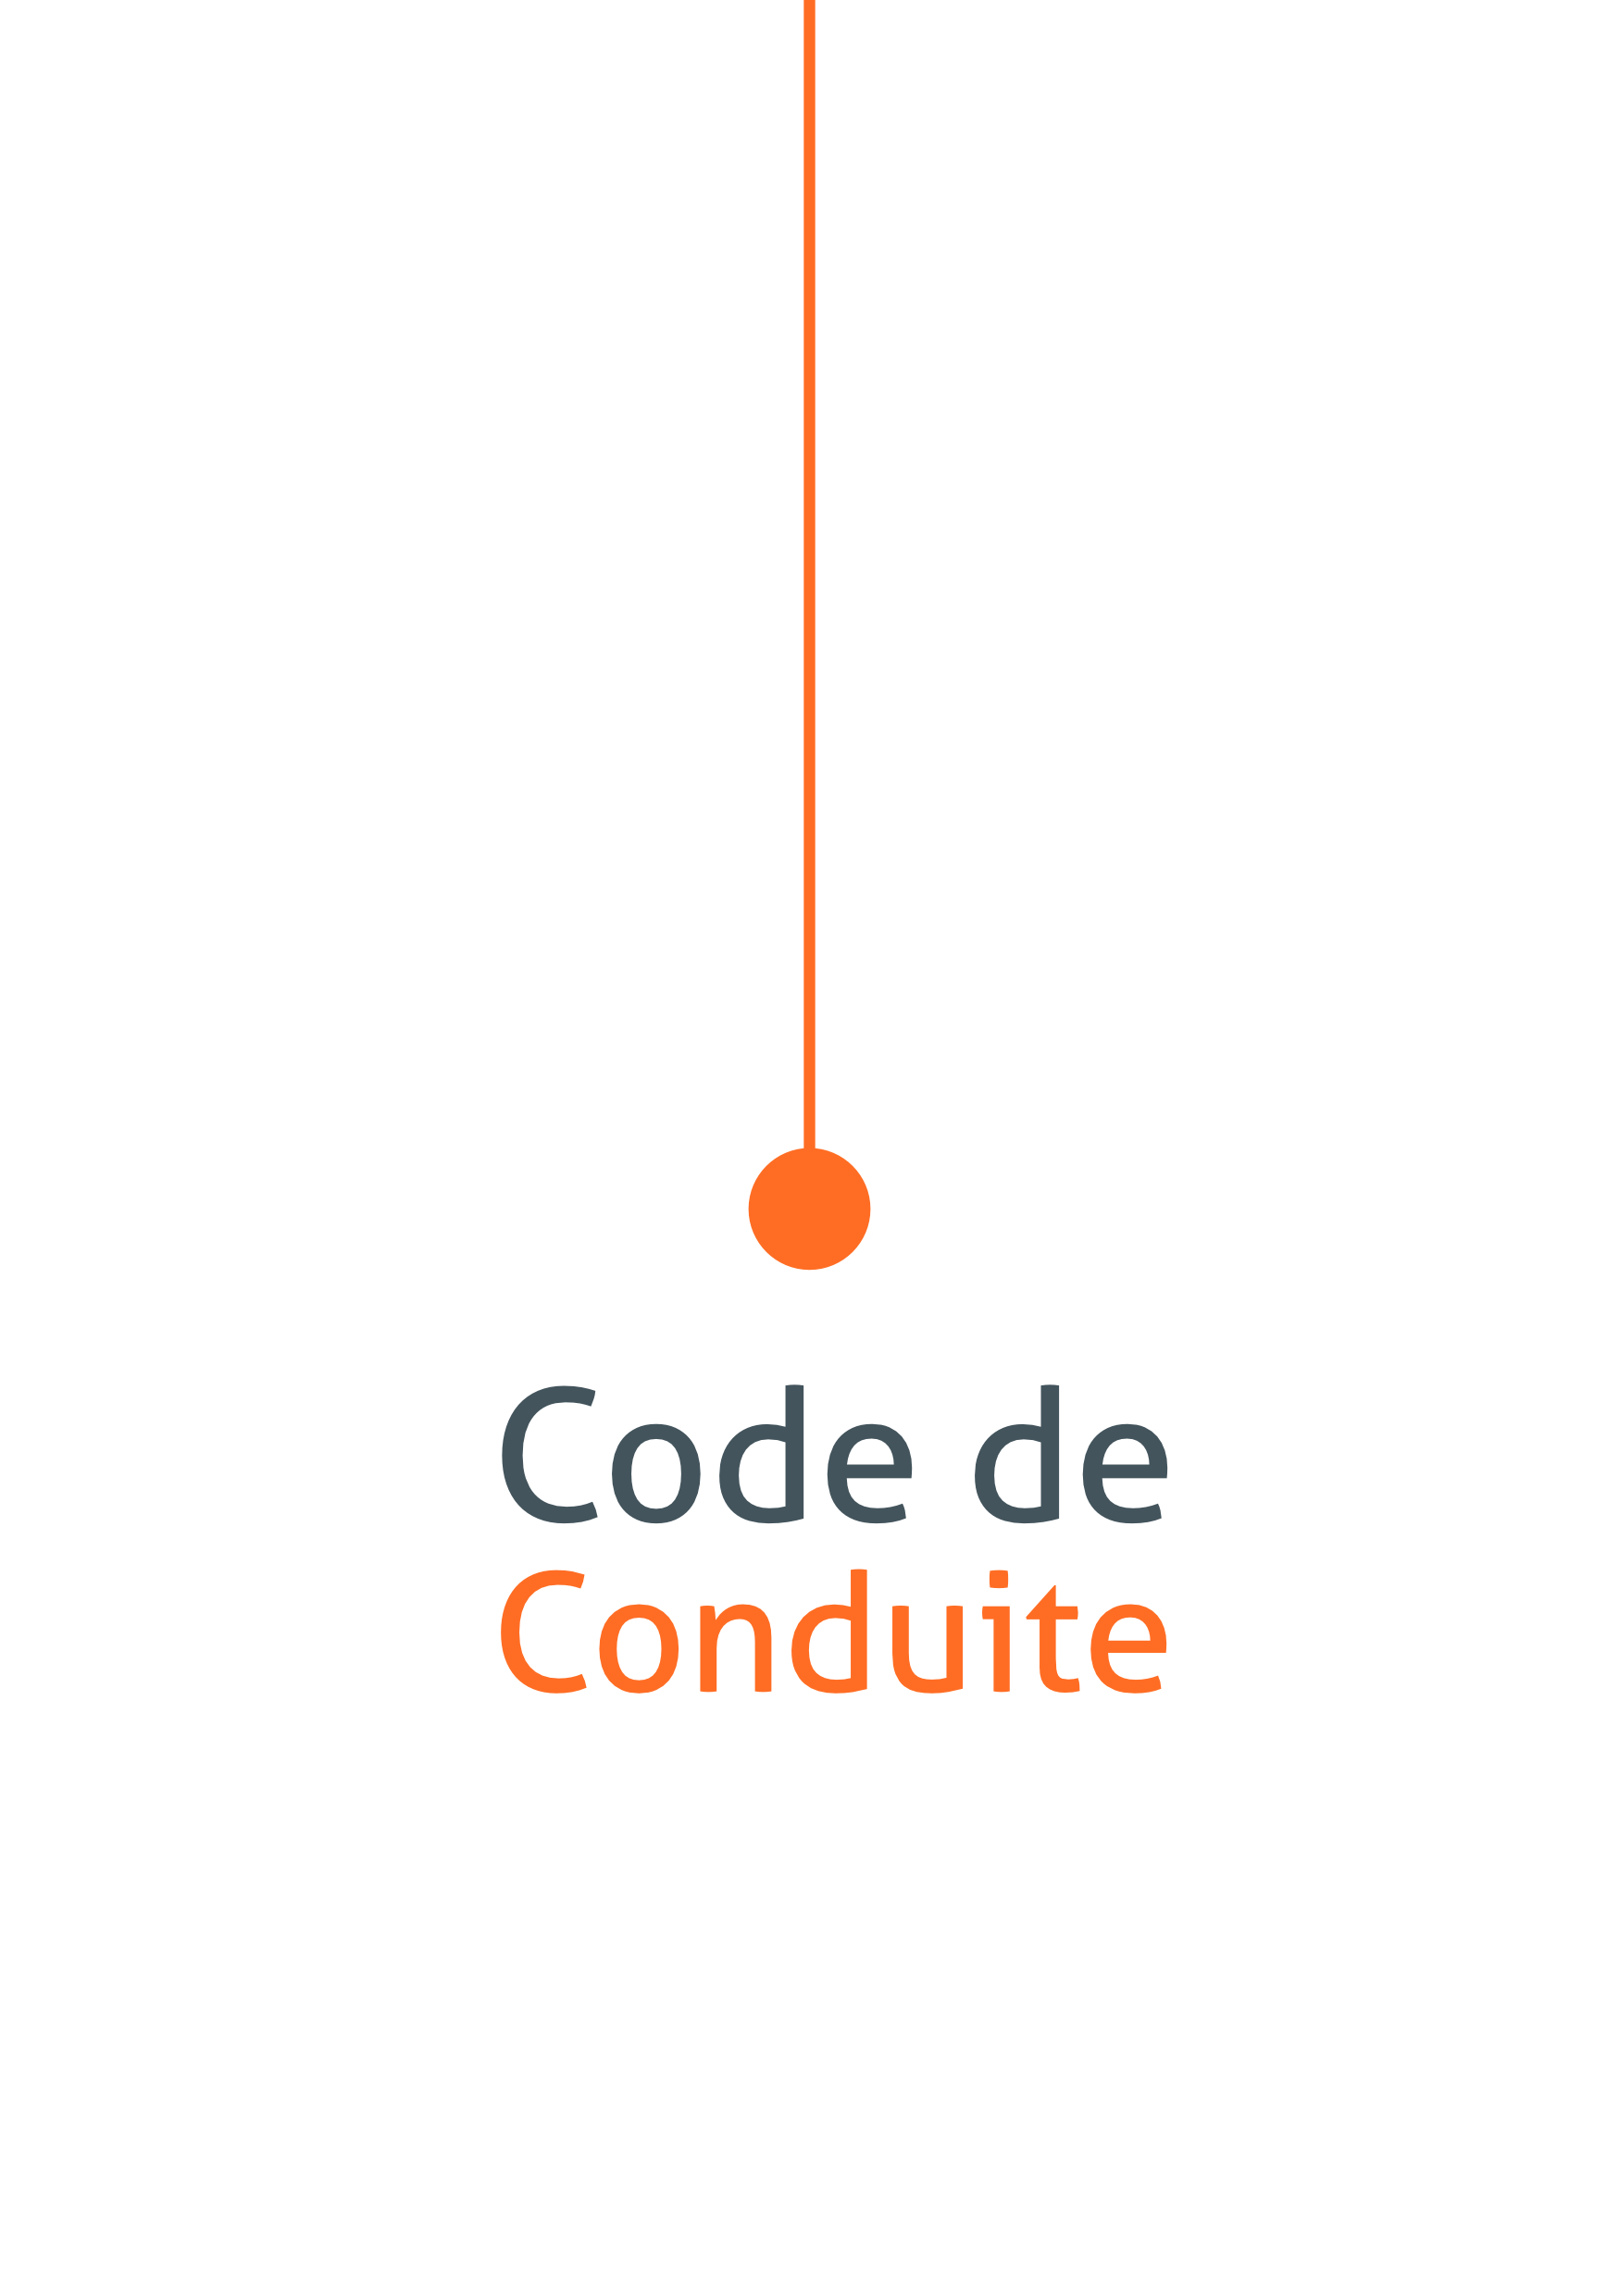 Online conference code of conduct